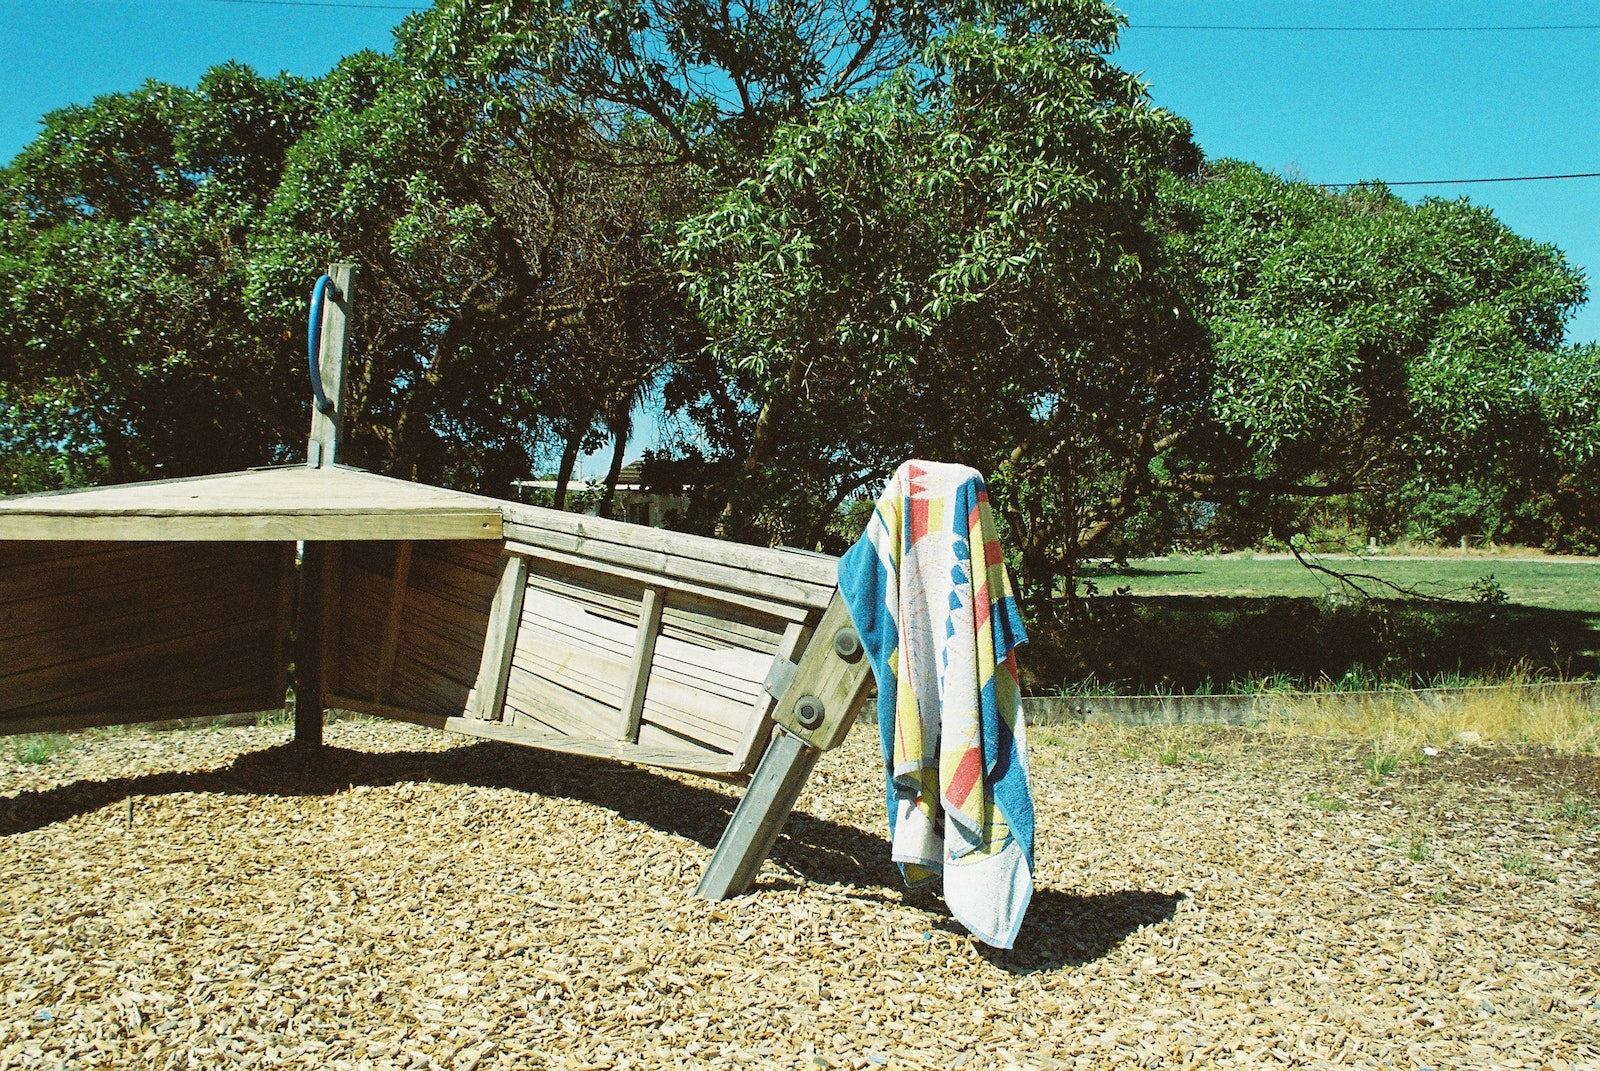 A towel hanging off some playground equipment